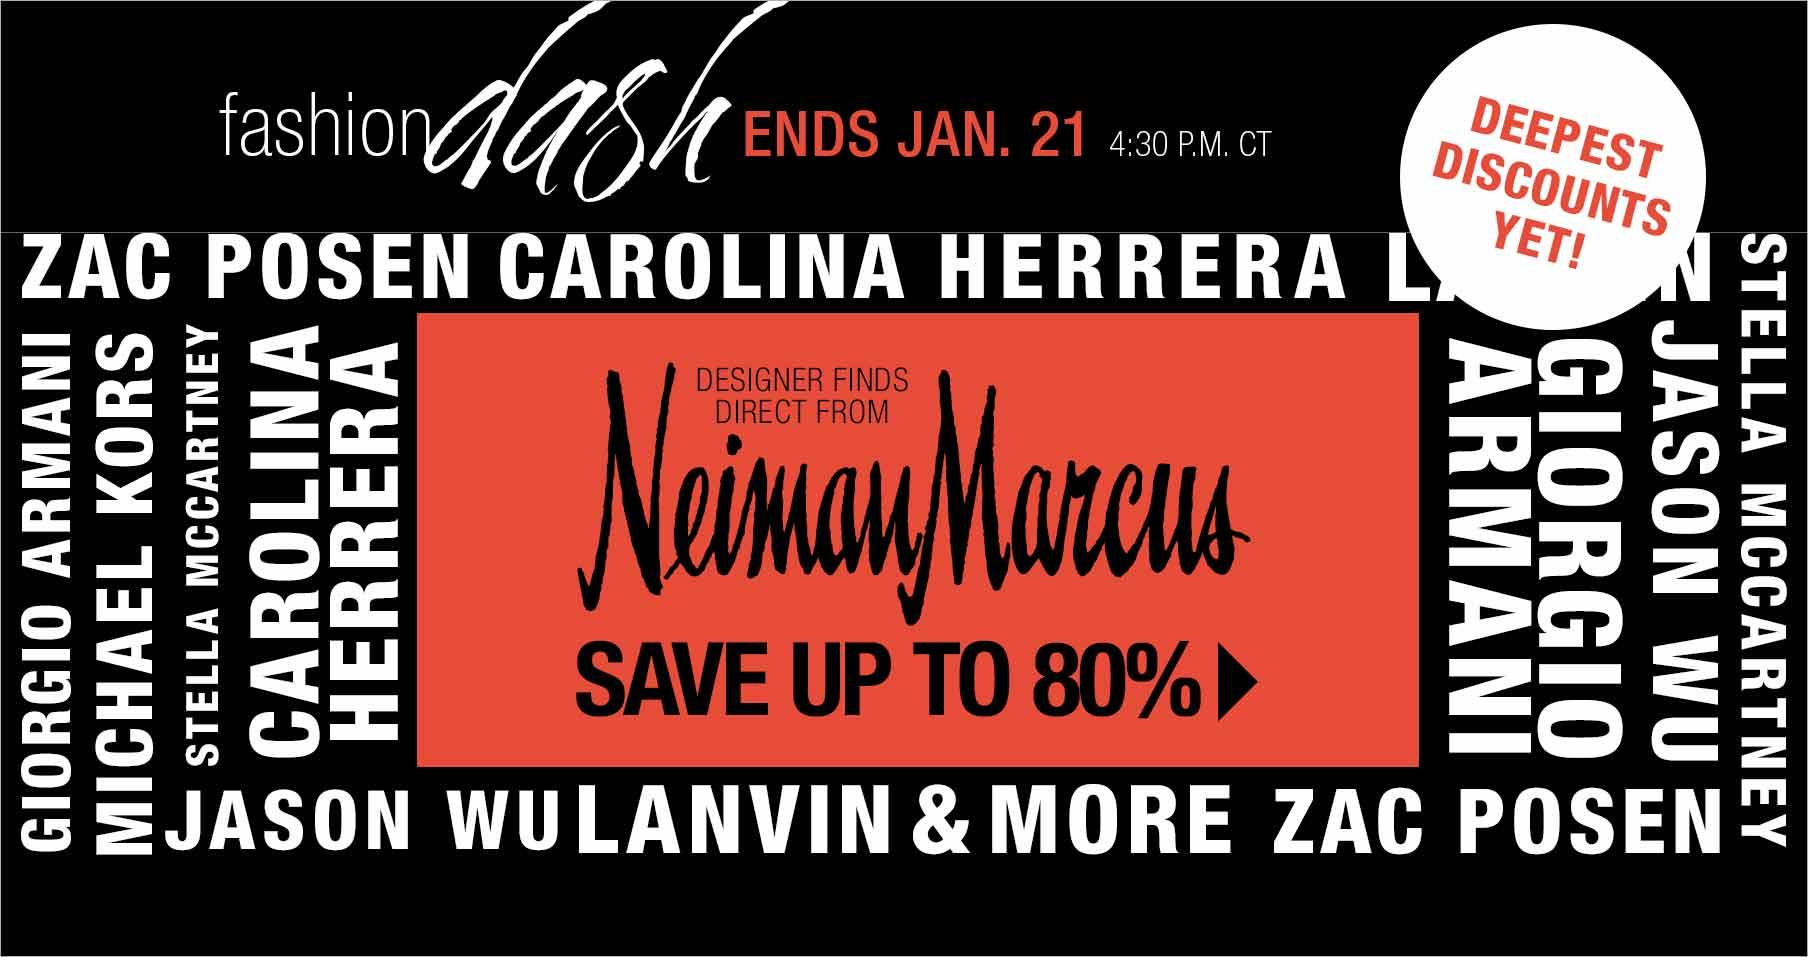 Up to 80% Off Designer's Collection in Fashion Dash at LastCall by Neiman Marcus